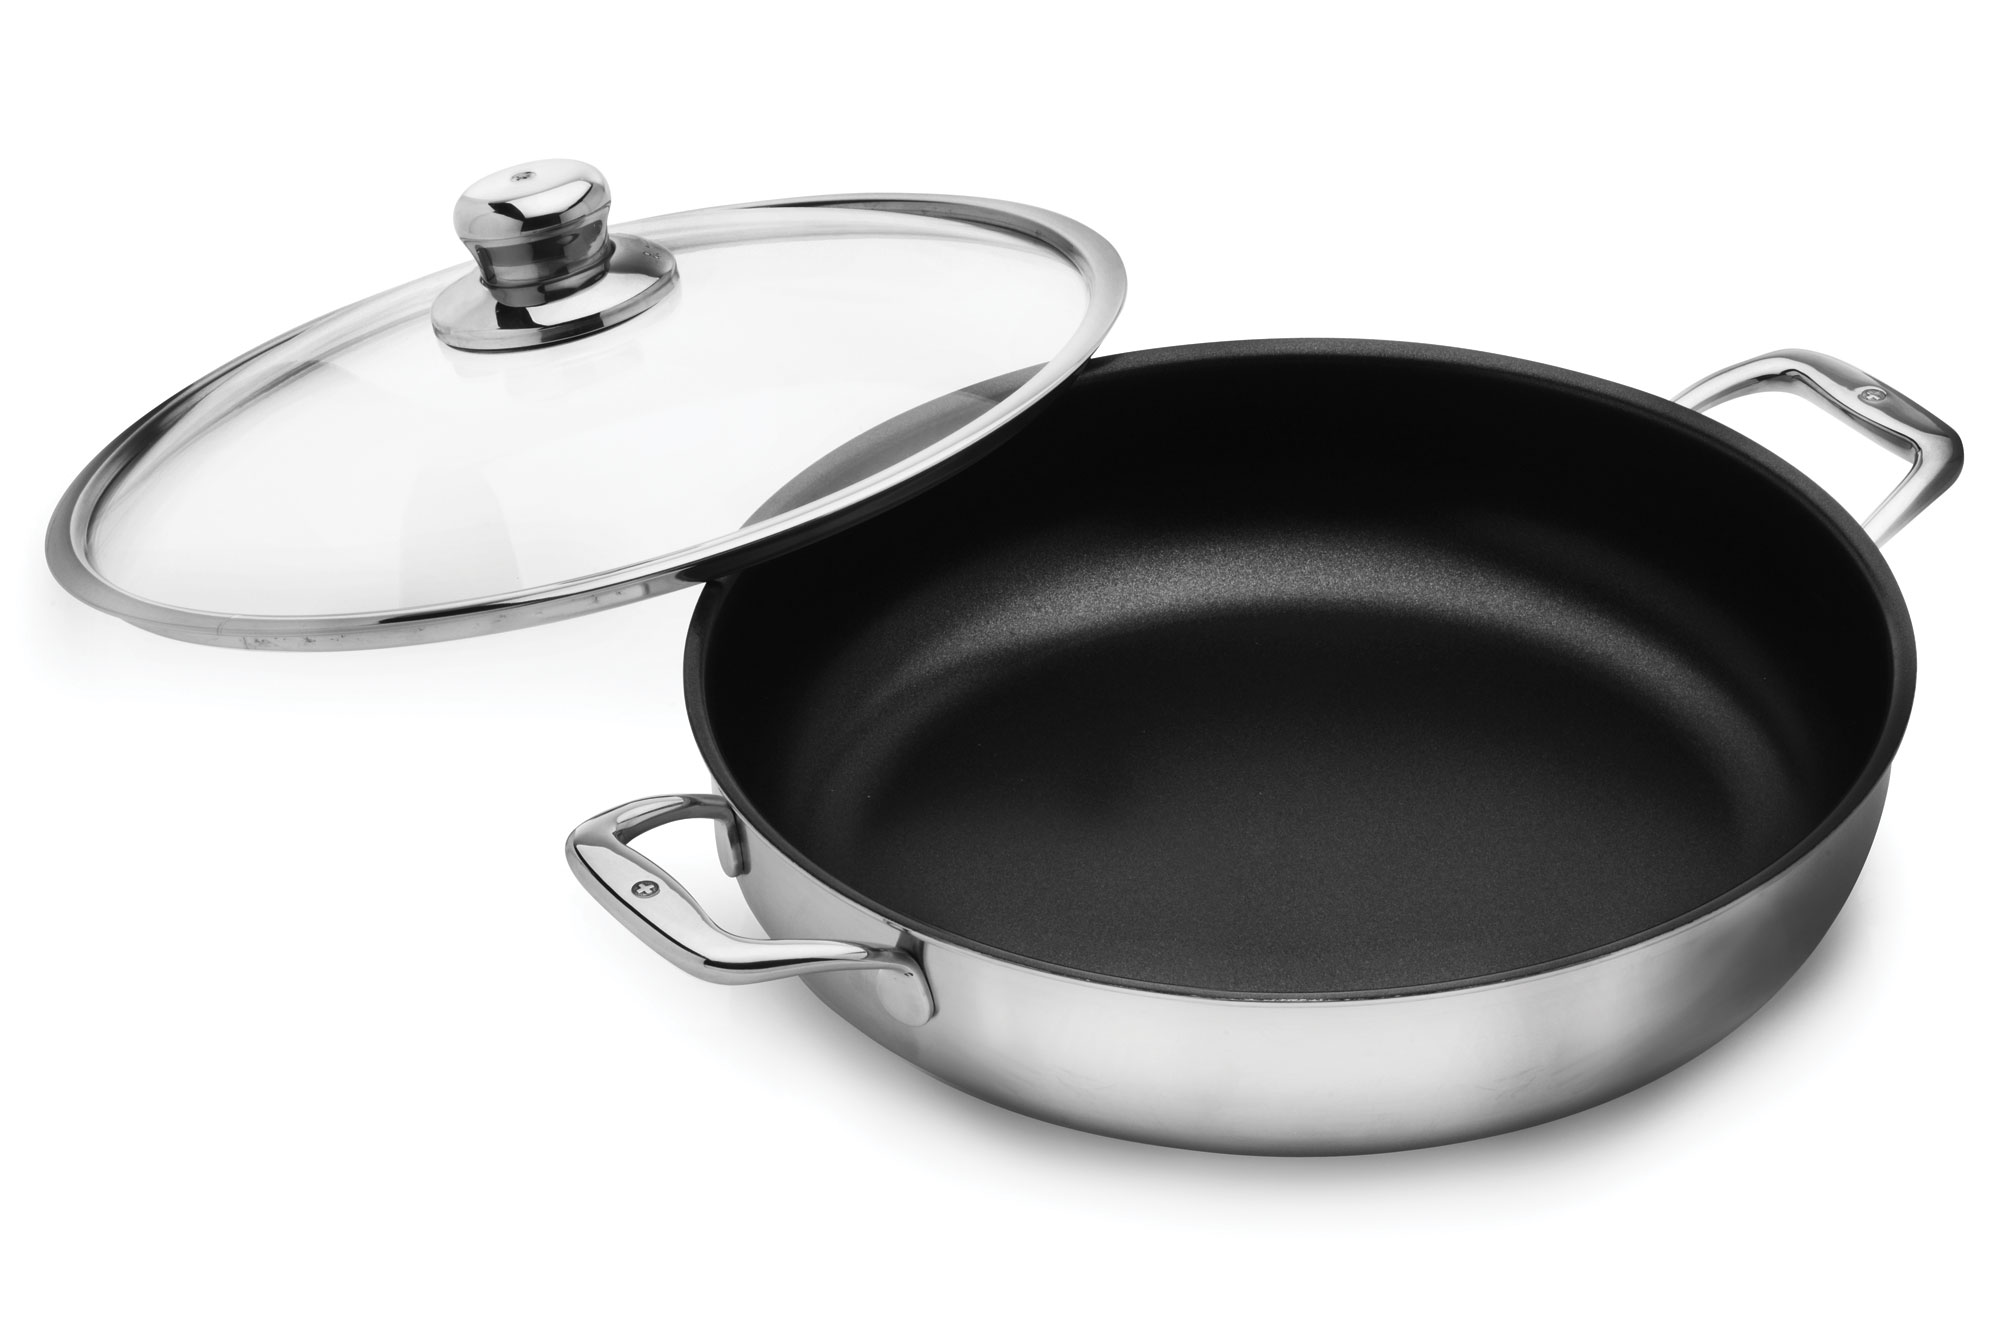 Swiss Diamond Prestige Clad Stainless Steel Nonstick Chef